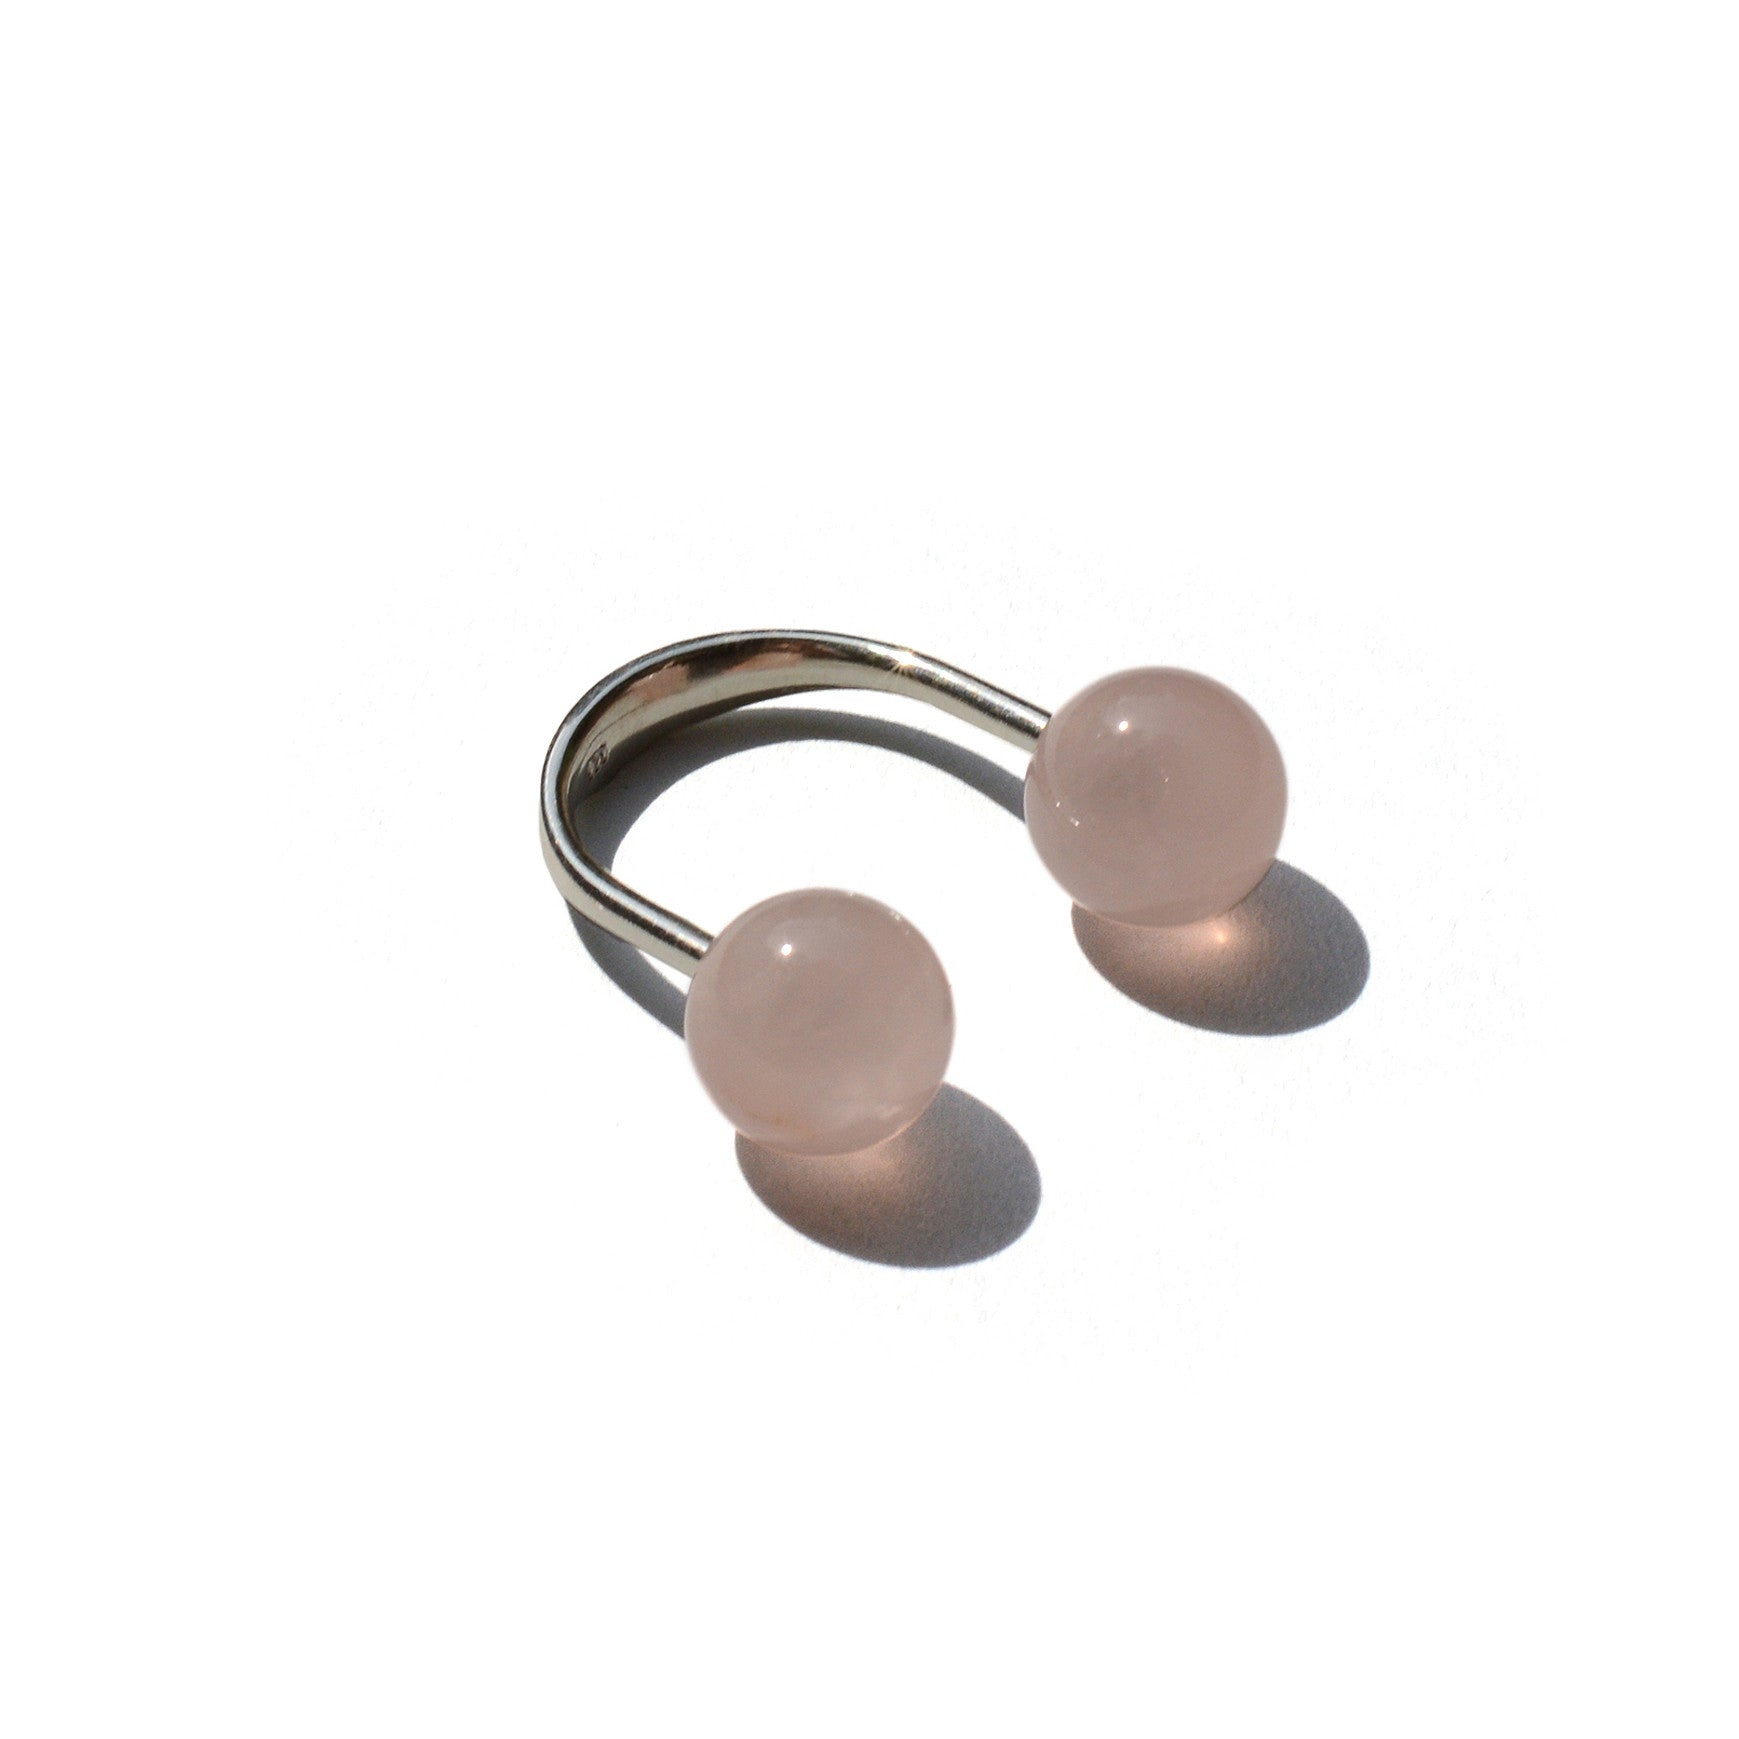 SASKIA DIEZ - ROSE SLING RING